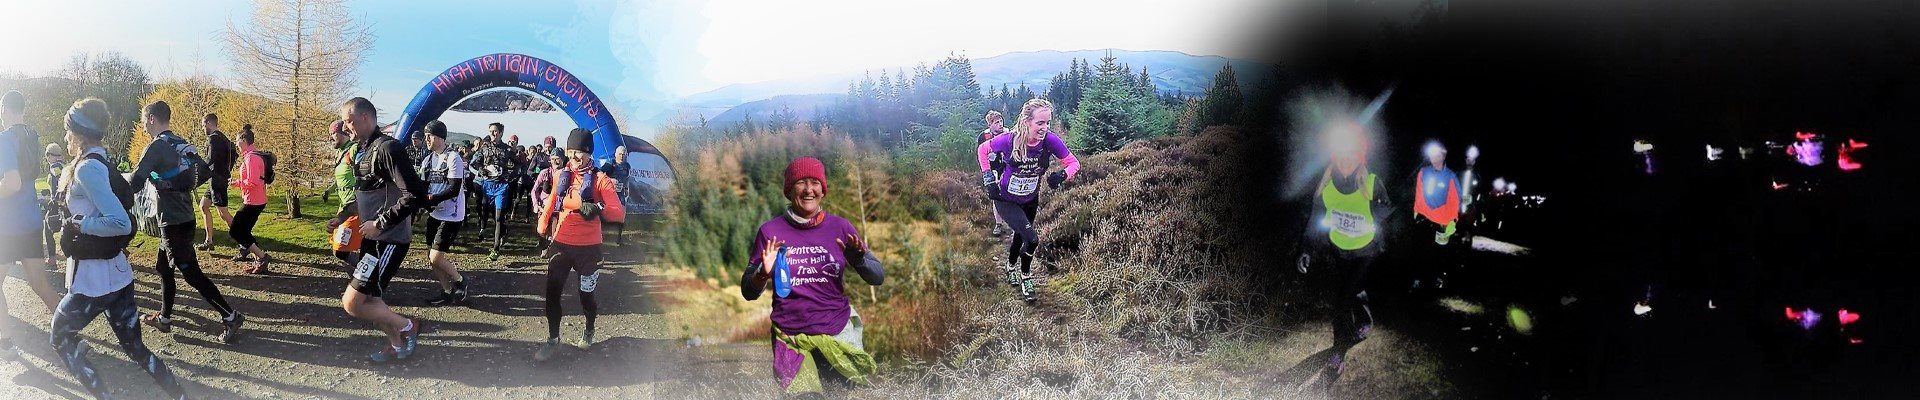 Glentress Winter Half Marathon & 10k Night Trail Races 2018